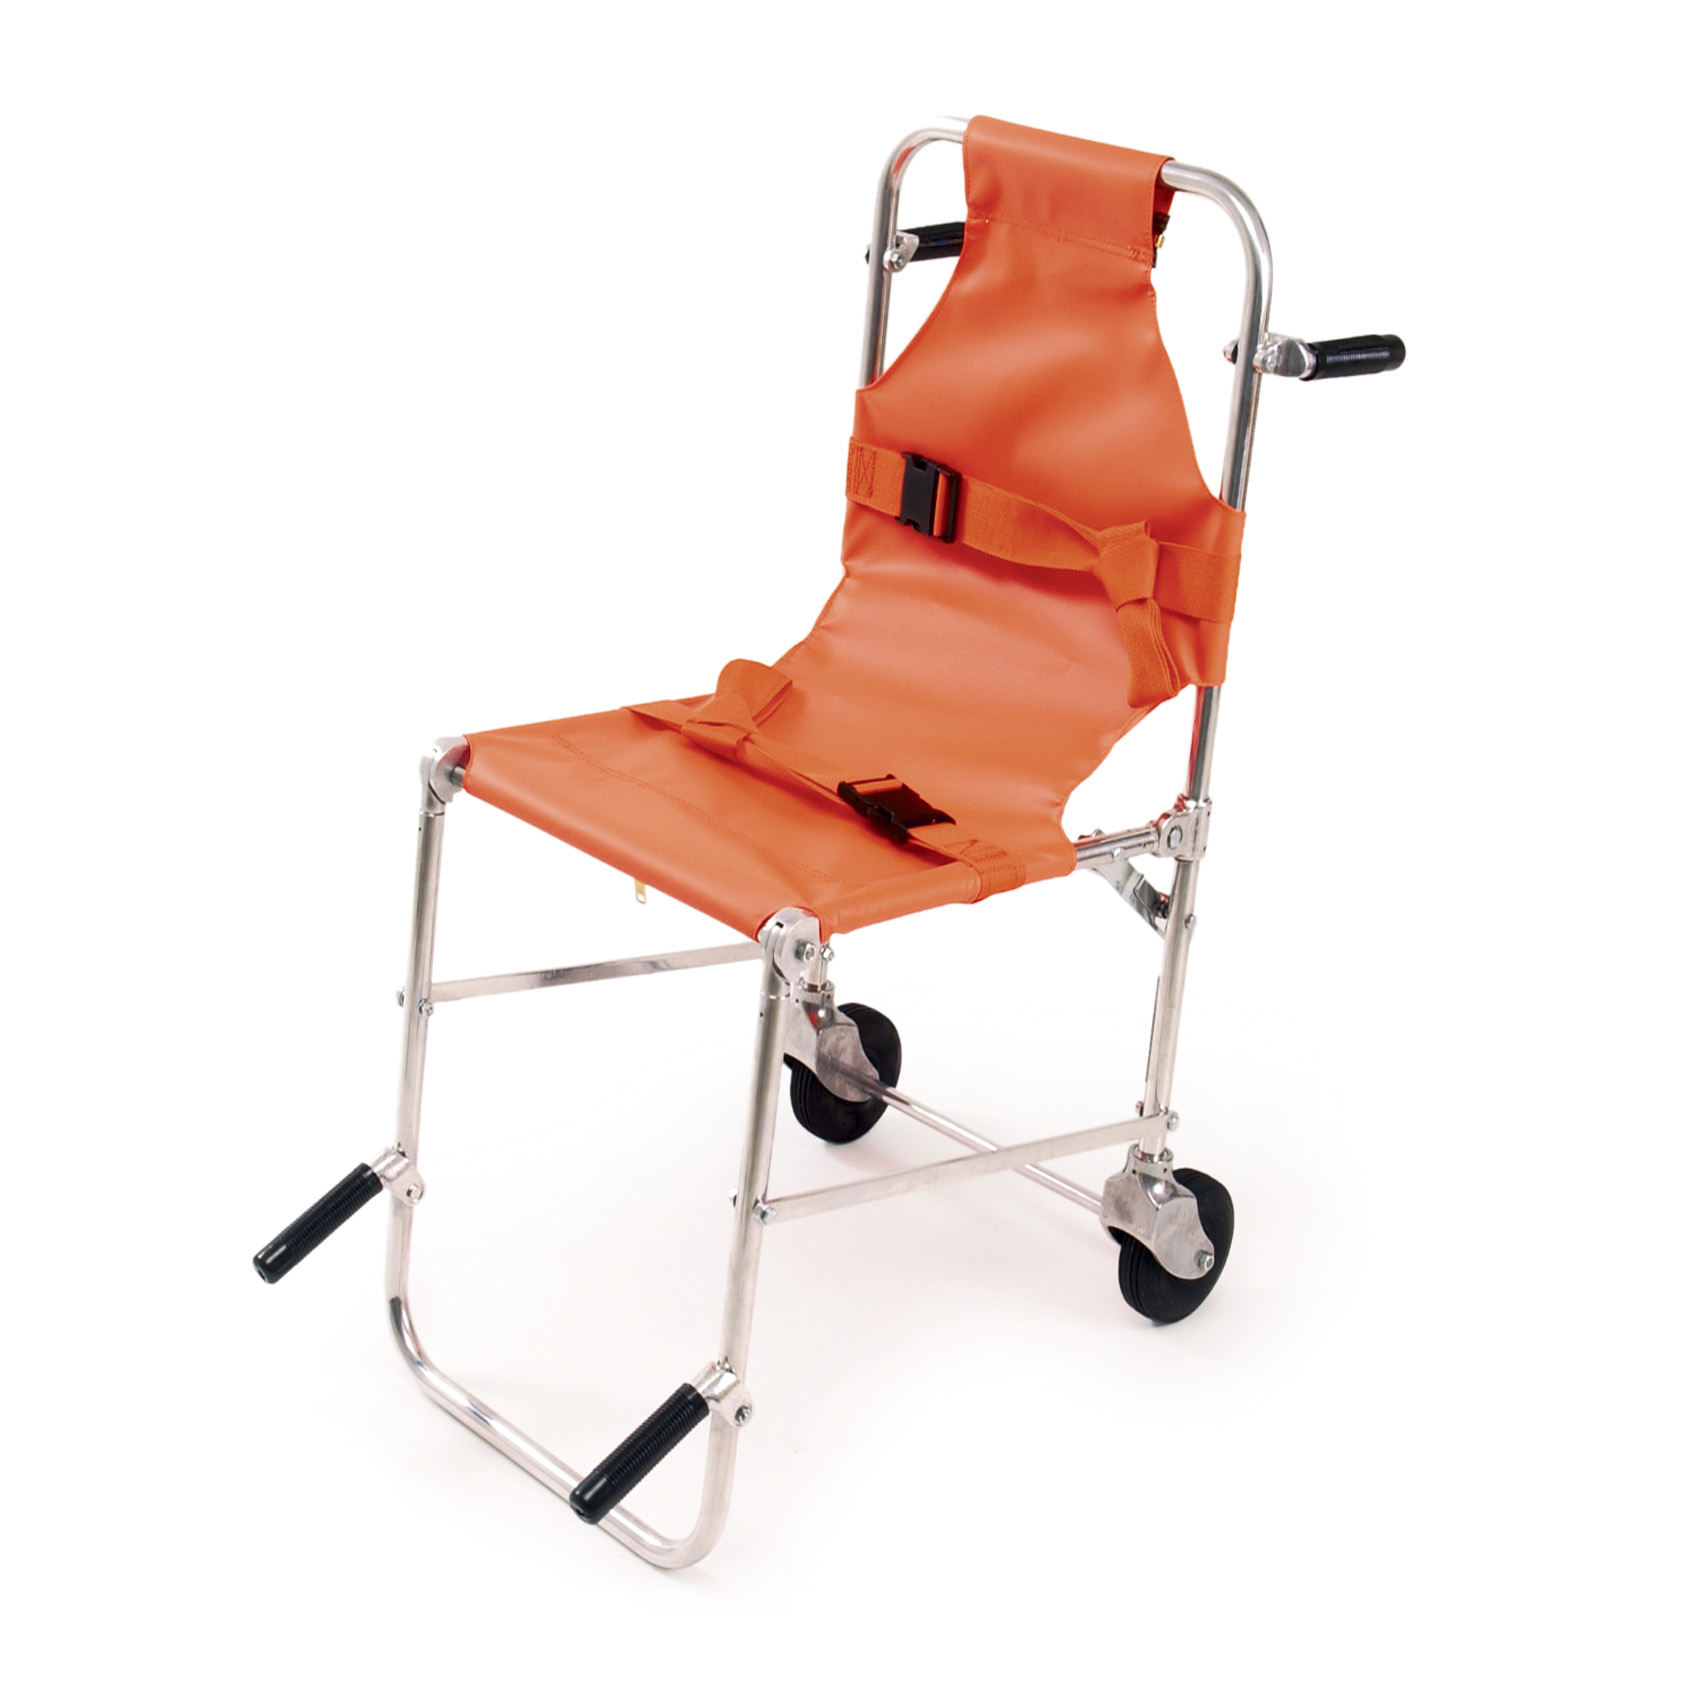 Ferno Model Ems Stair Chair Refurbished Stretchers